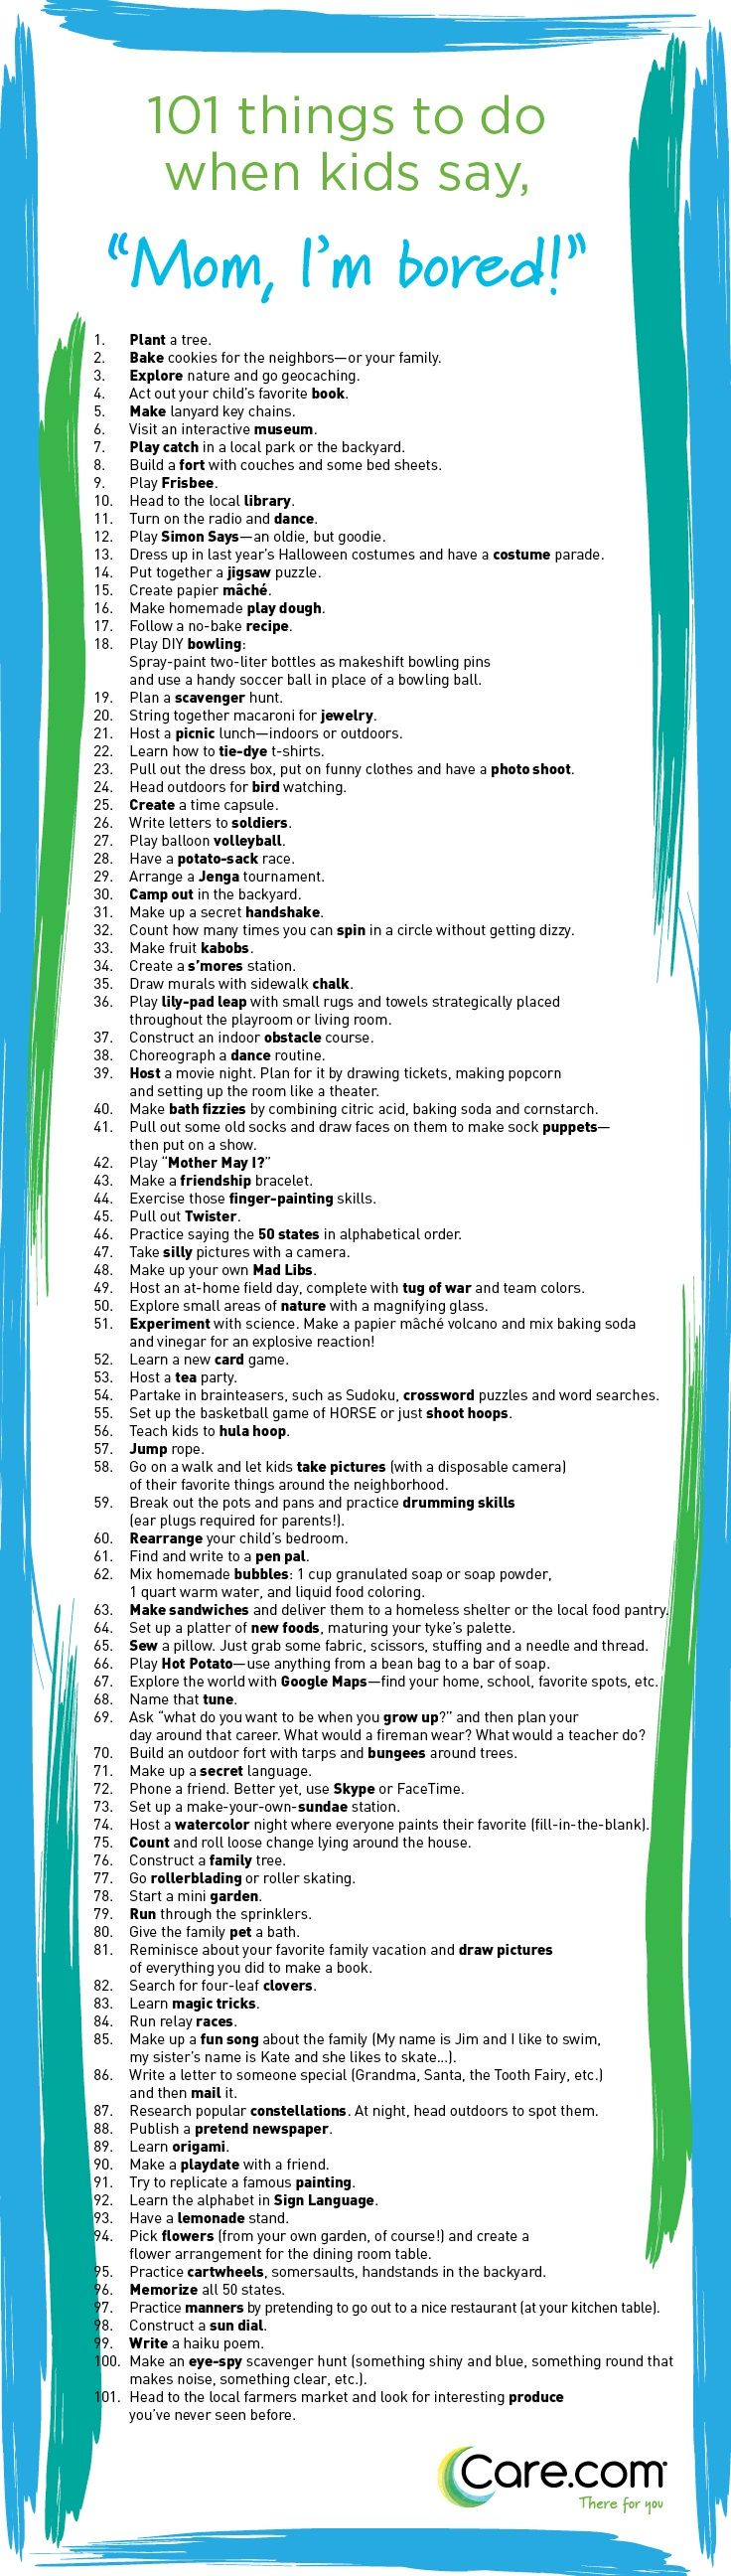 """101 Things to Do When Kids Say """"I'm Bored"""" Nix boredom in the bud with this list of fun (and low cost, low stress) activities to keep your kids occupied and happy. http://www.care.com/child-care-101-things-to-do-when-kids-say-im-bored-p1017-q39171288.html"""